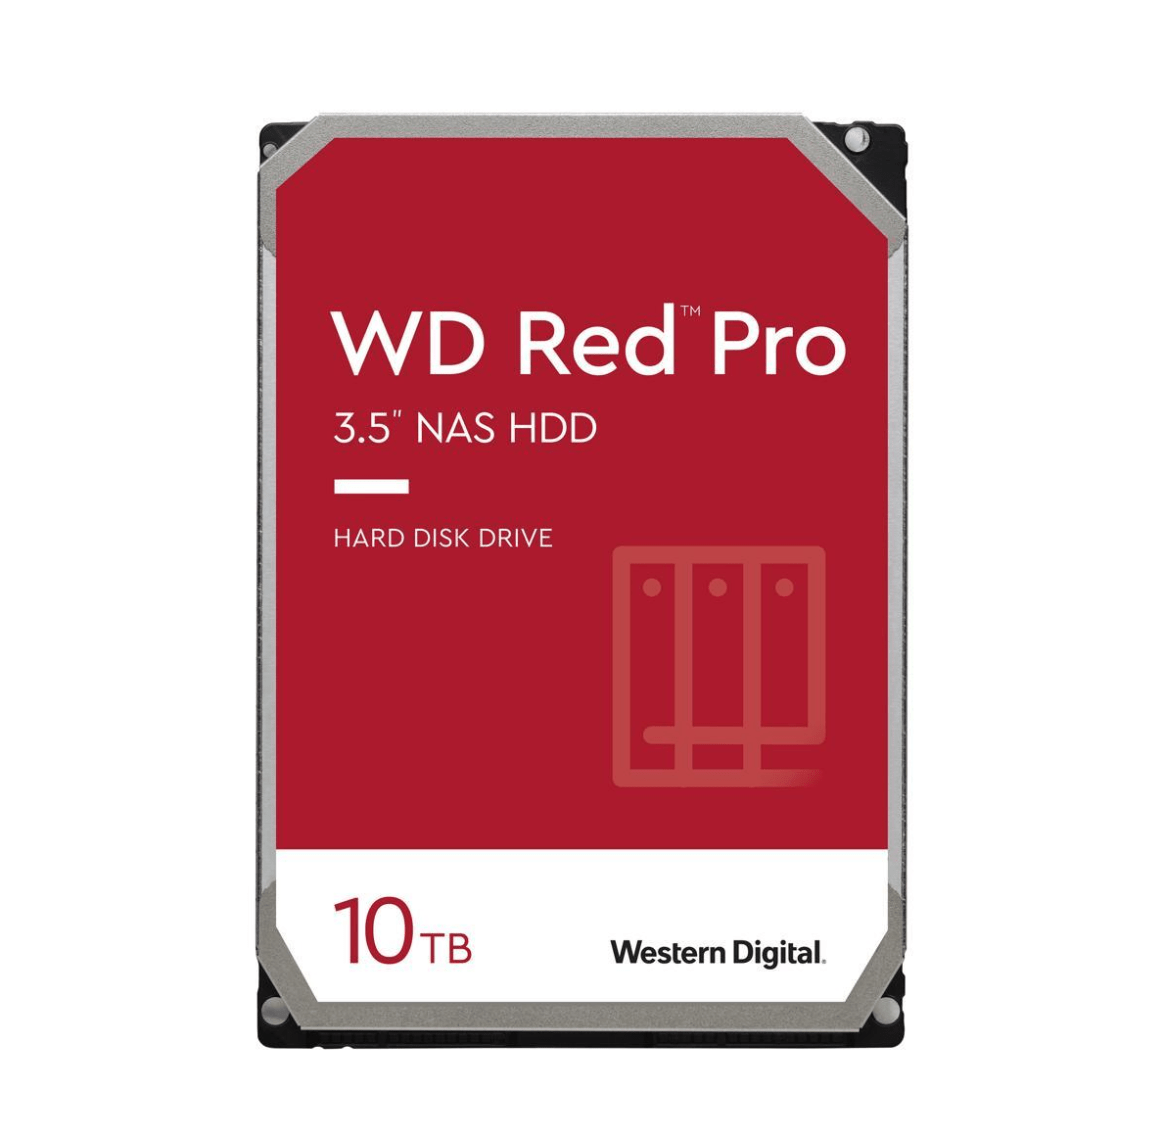 WD Red Pro 10TB NAS HDD